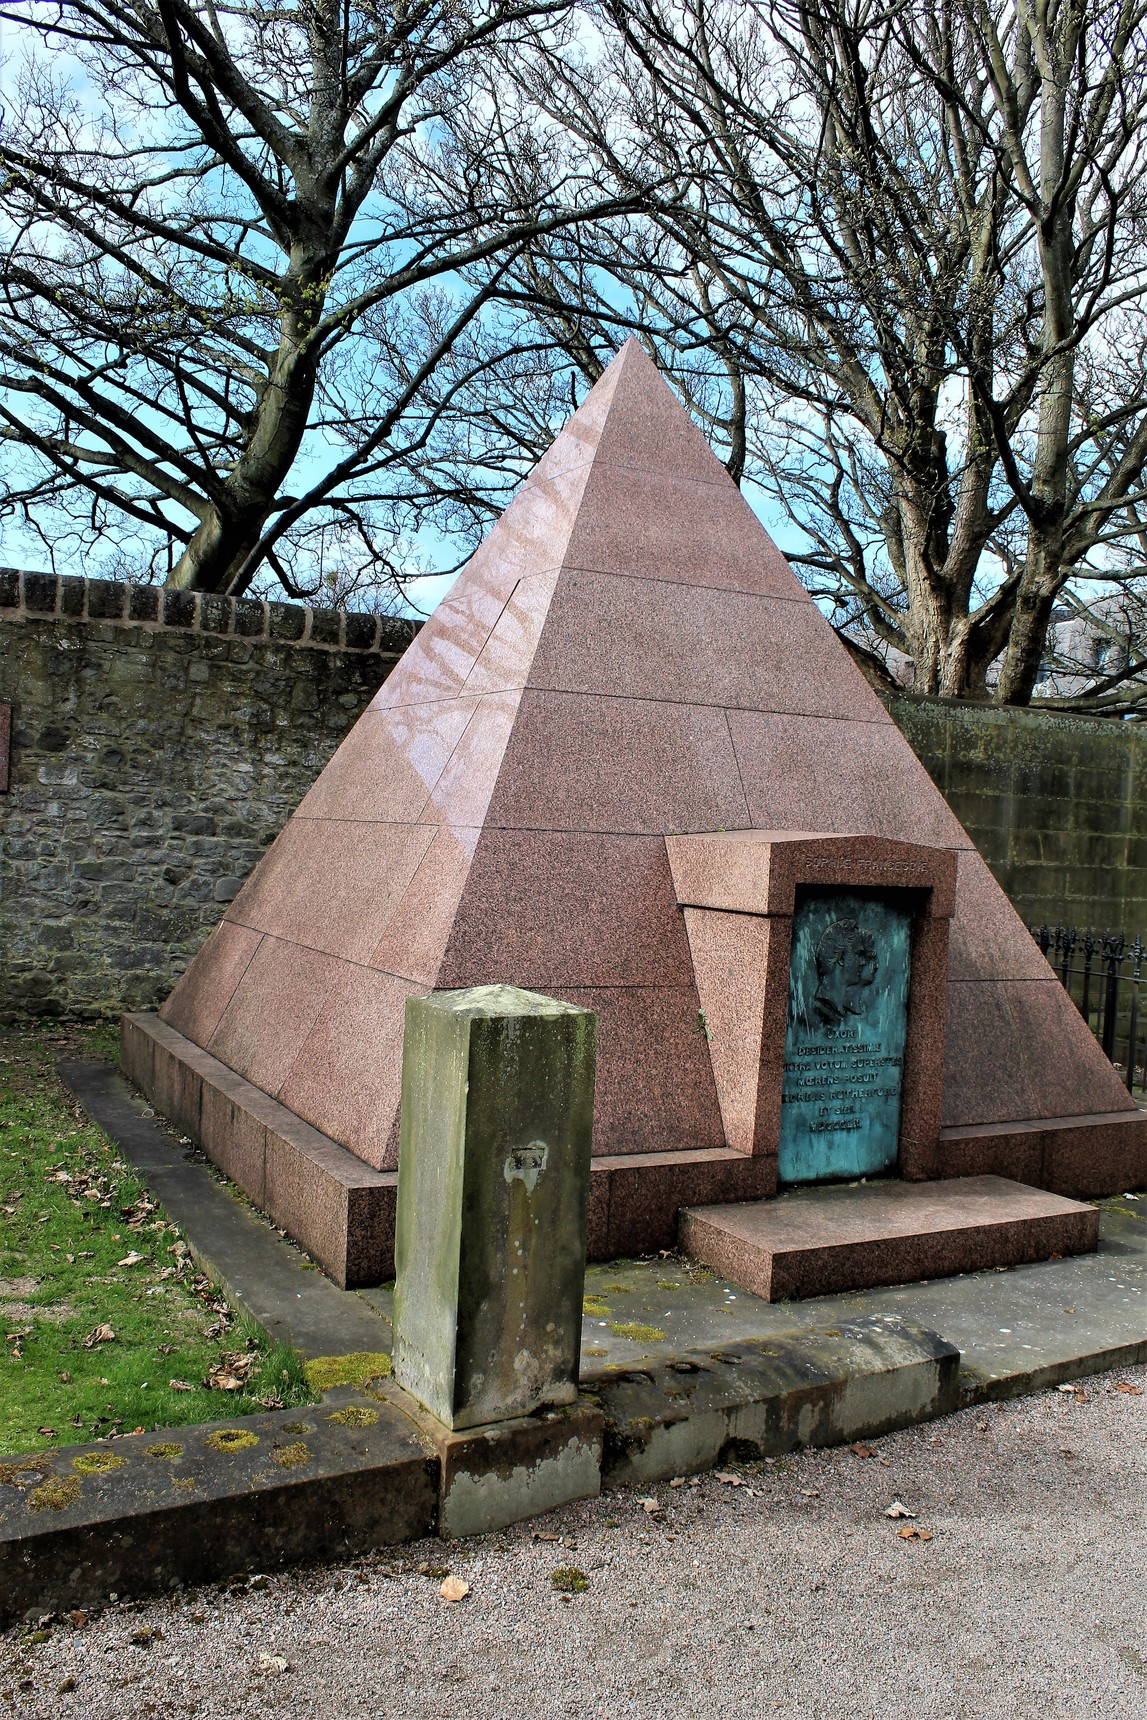 An unusual monument